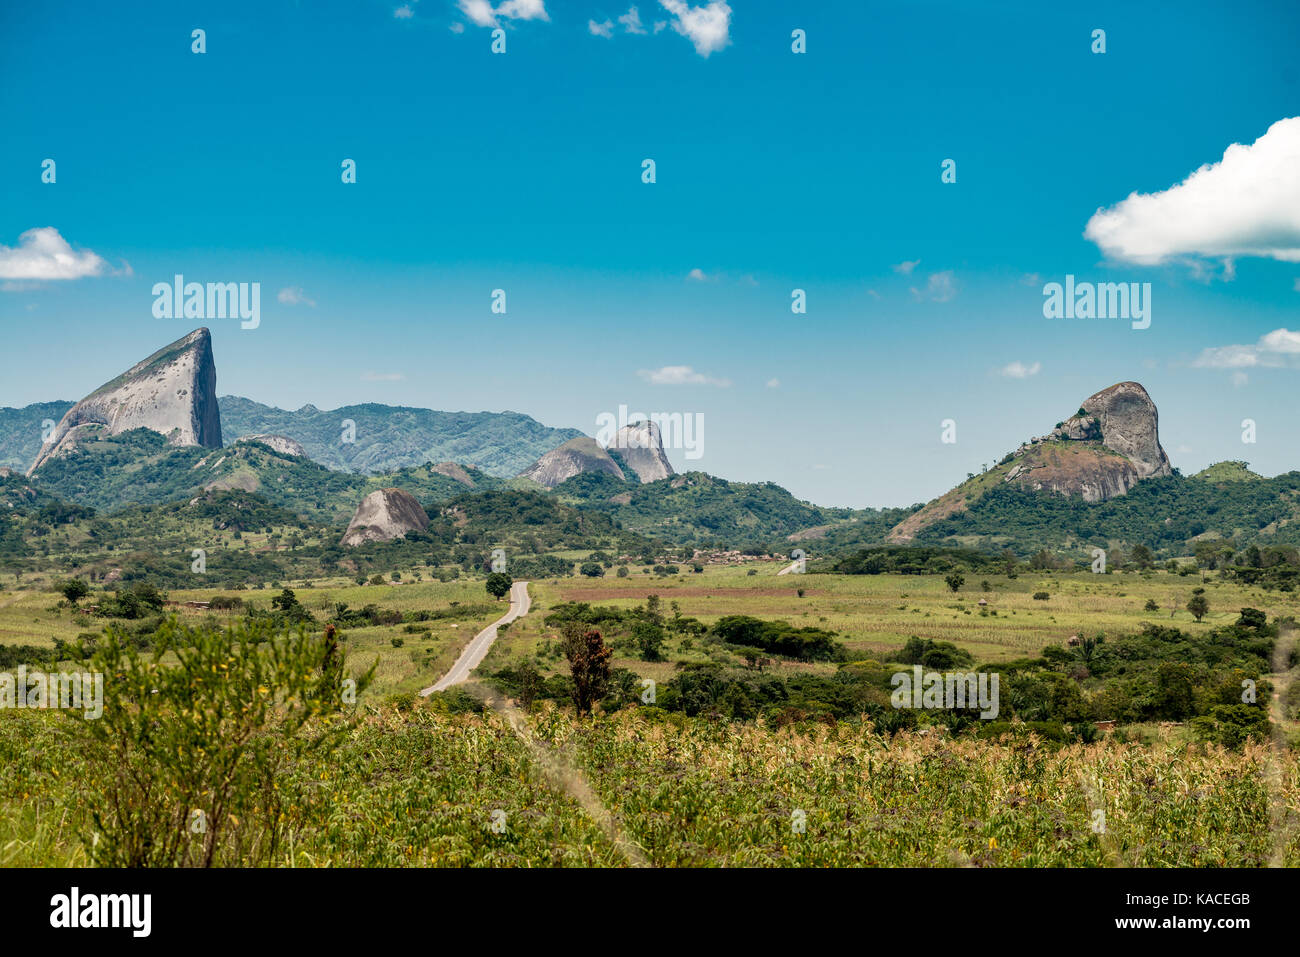 Africa - Stock Image